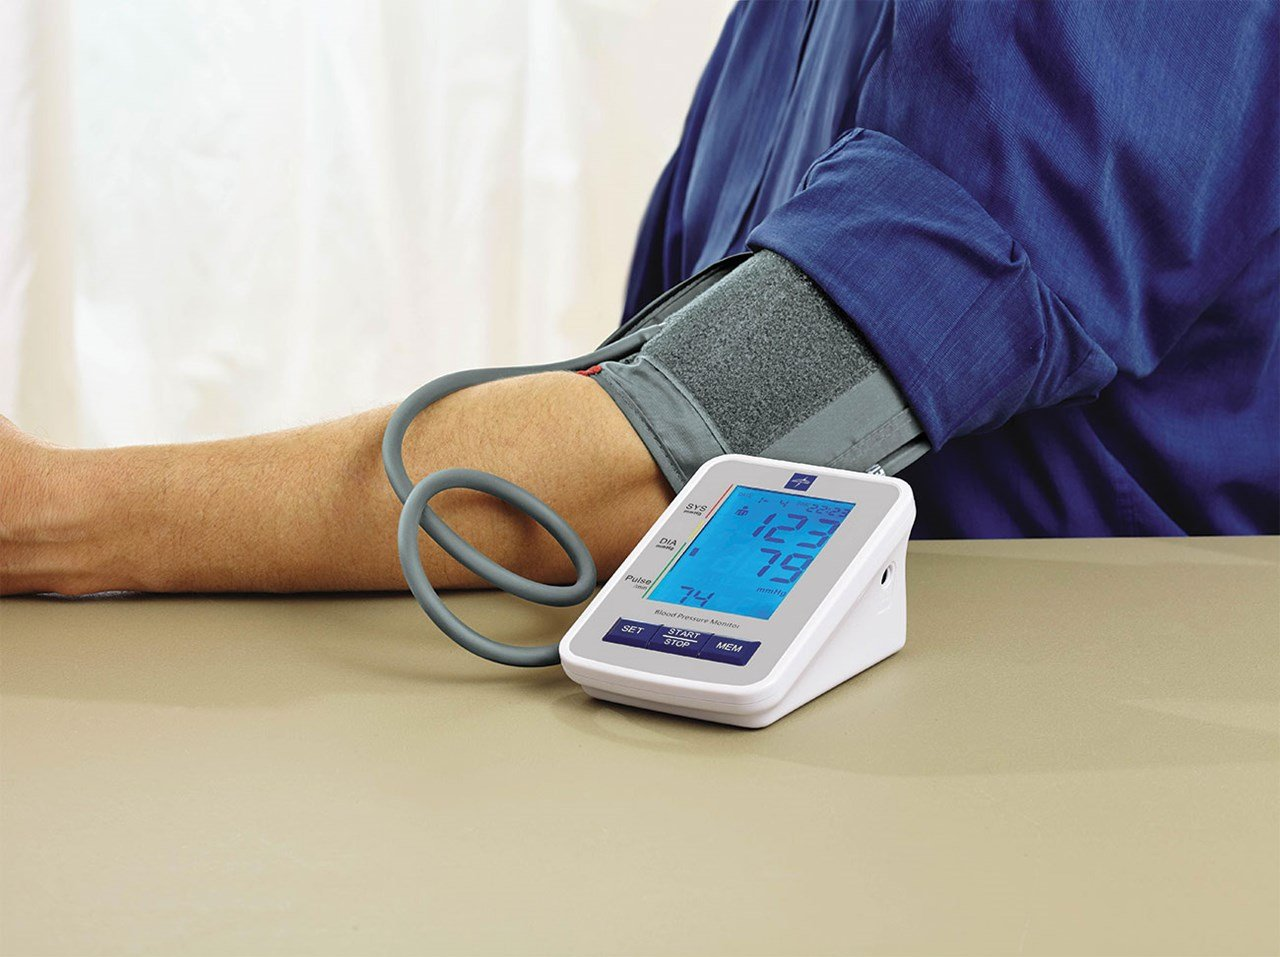 Talking Blood Pressure Monitor - Large Adult Cuff - English + Spanish by MaxiAids